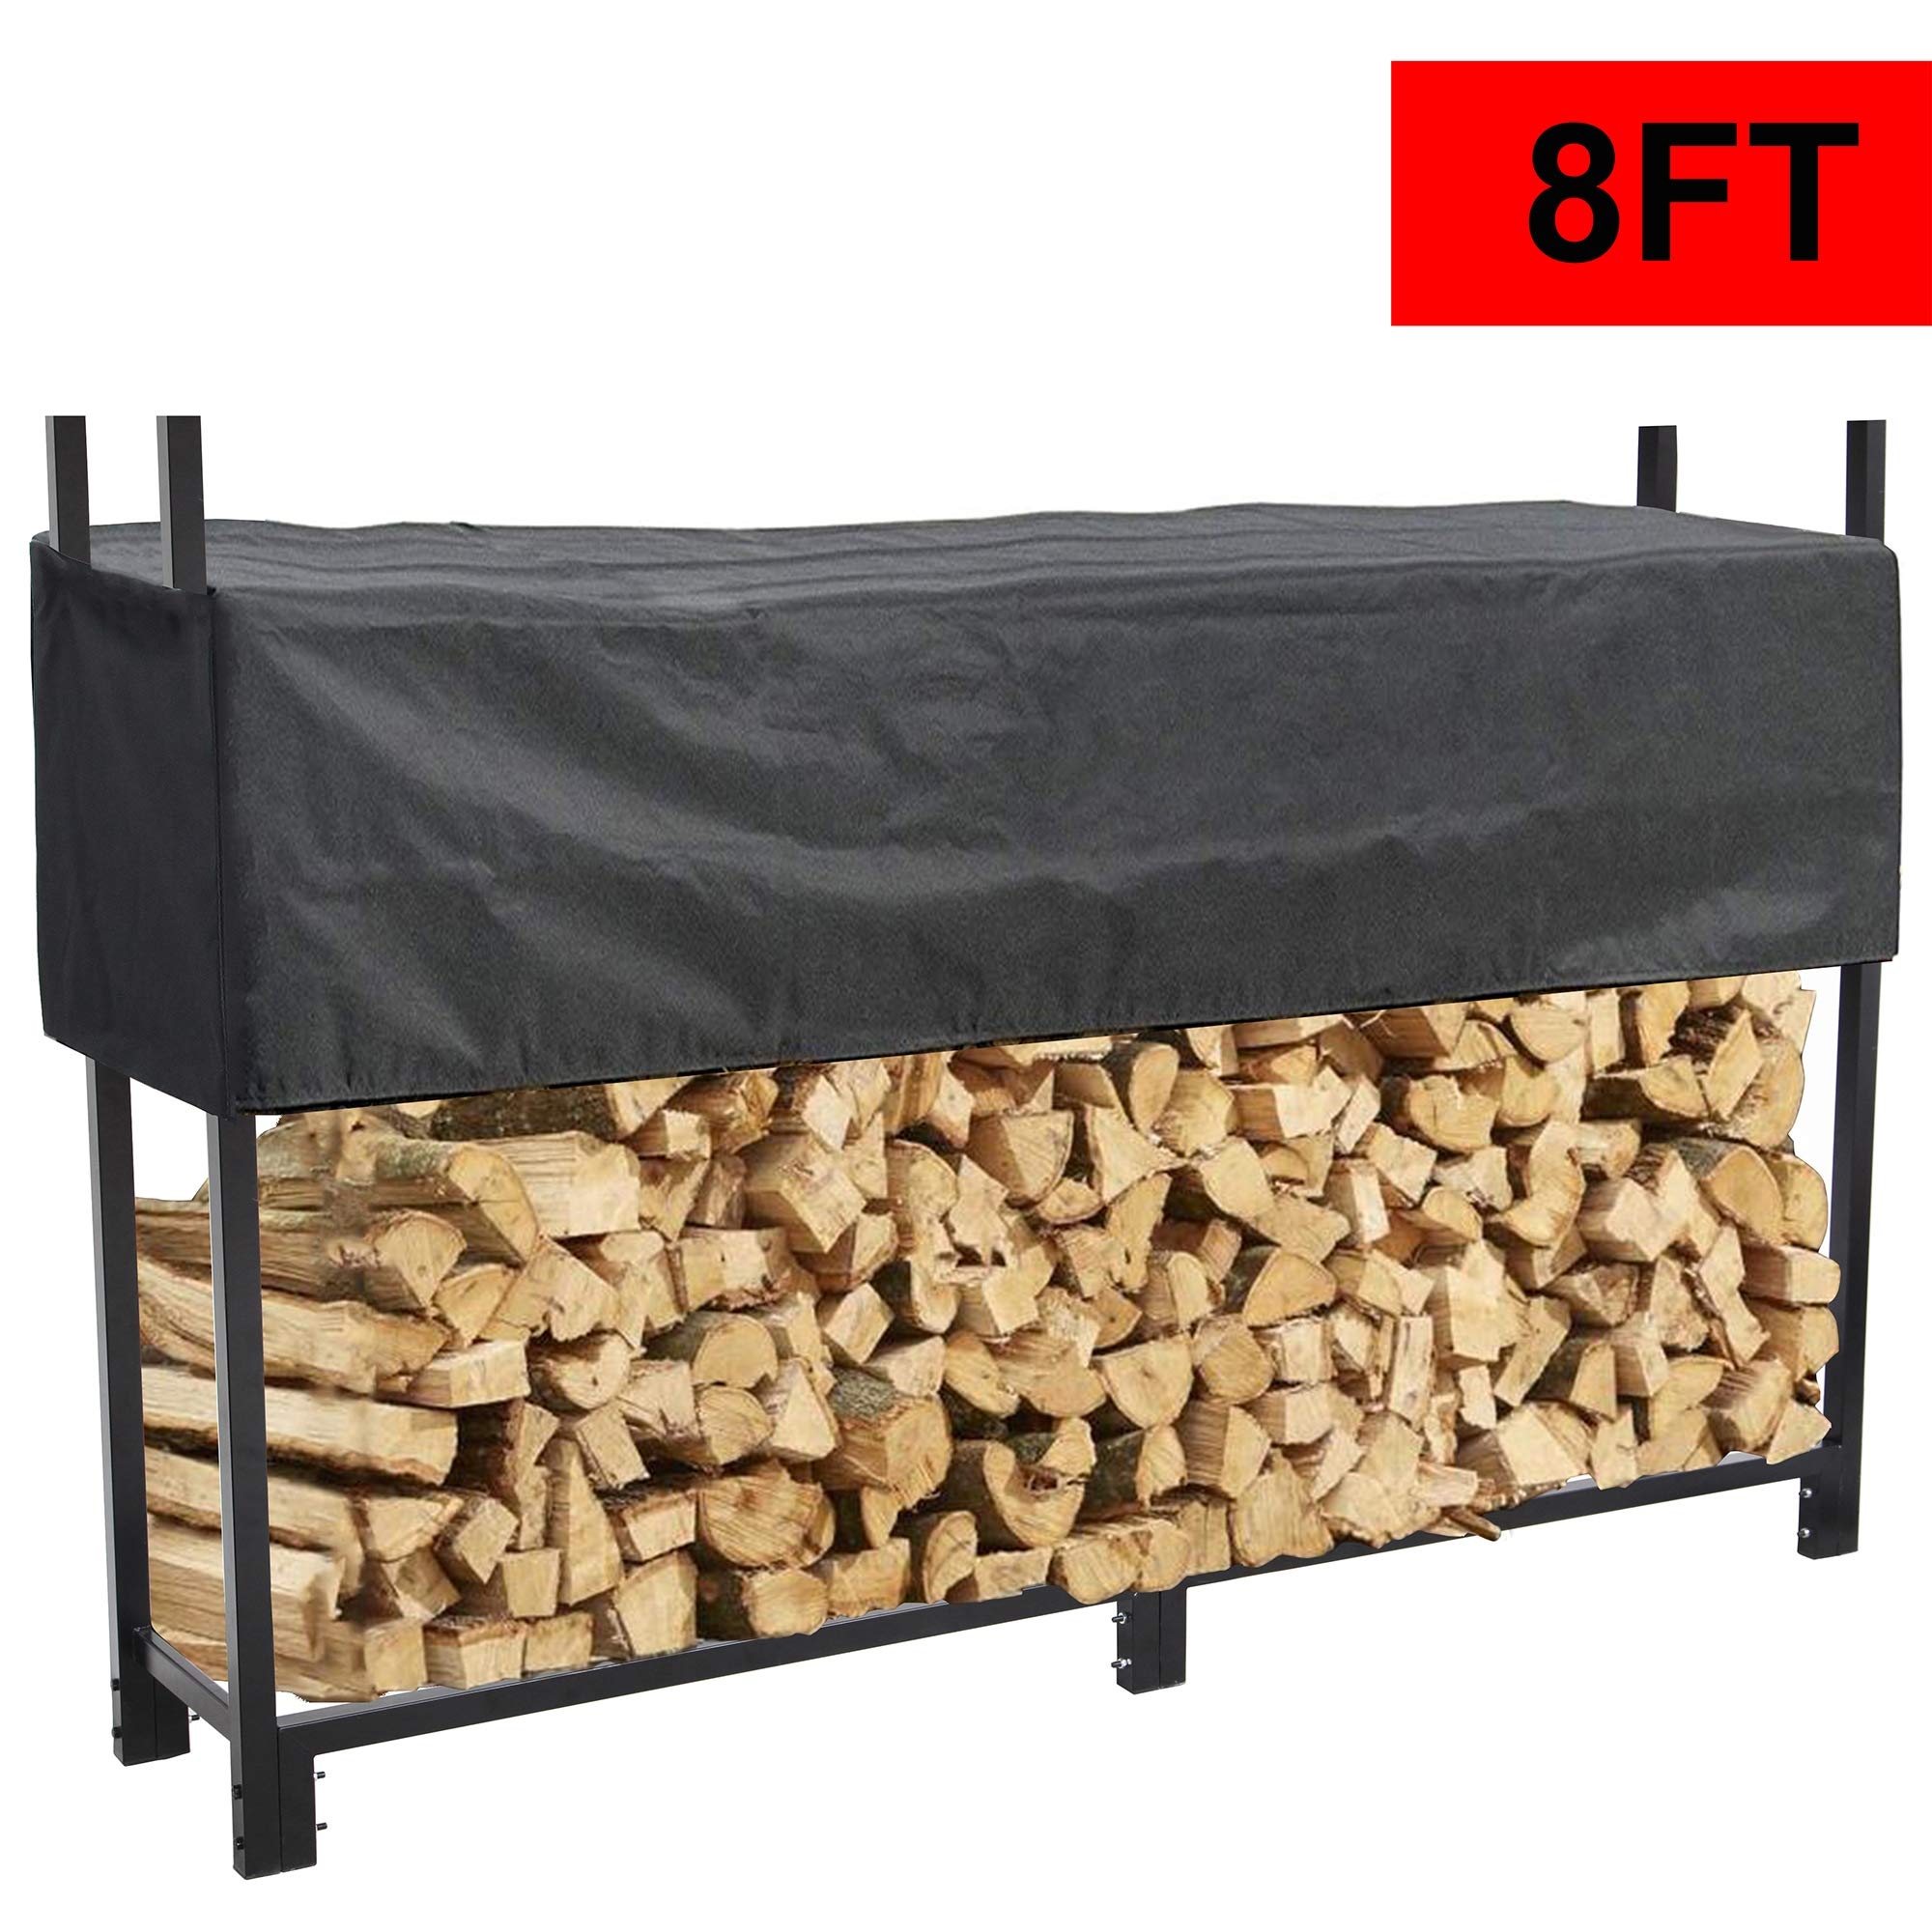 Reliancer 8 FT Firewood Log Rack w/ 600D Waterproof Cover Indoor Outdoor Heavy Duty Steel Log Holder Fire Wood Holders Storage Carrier Large Storage Capacity for Home Backyard Patio Garden Fireplace by Reliancer